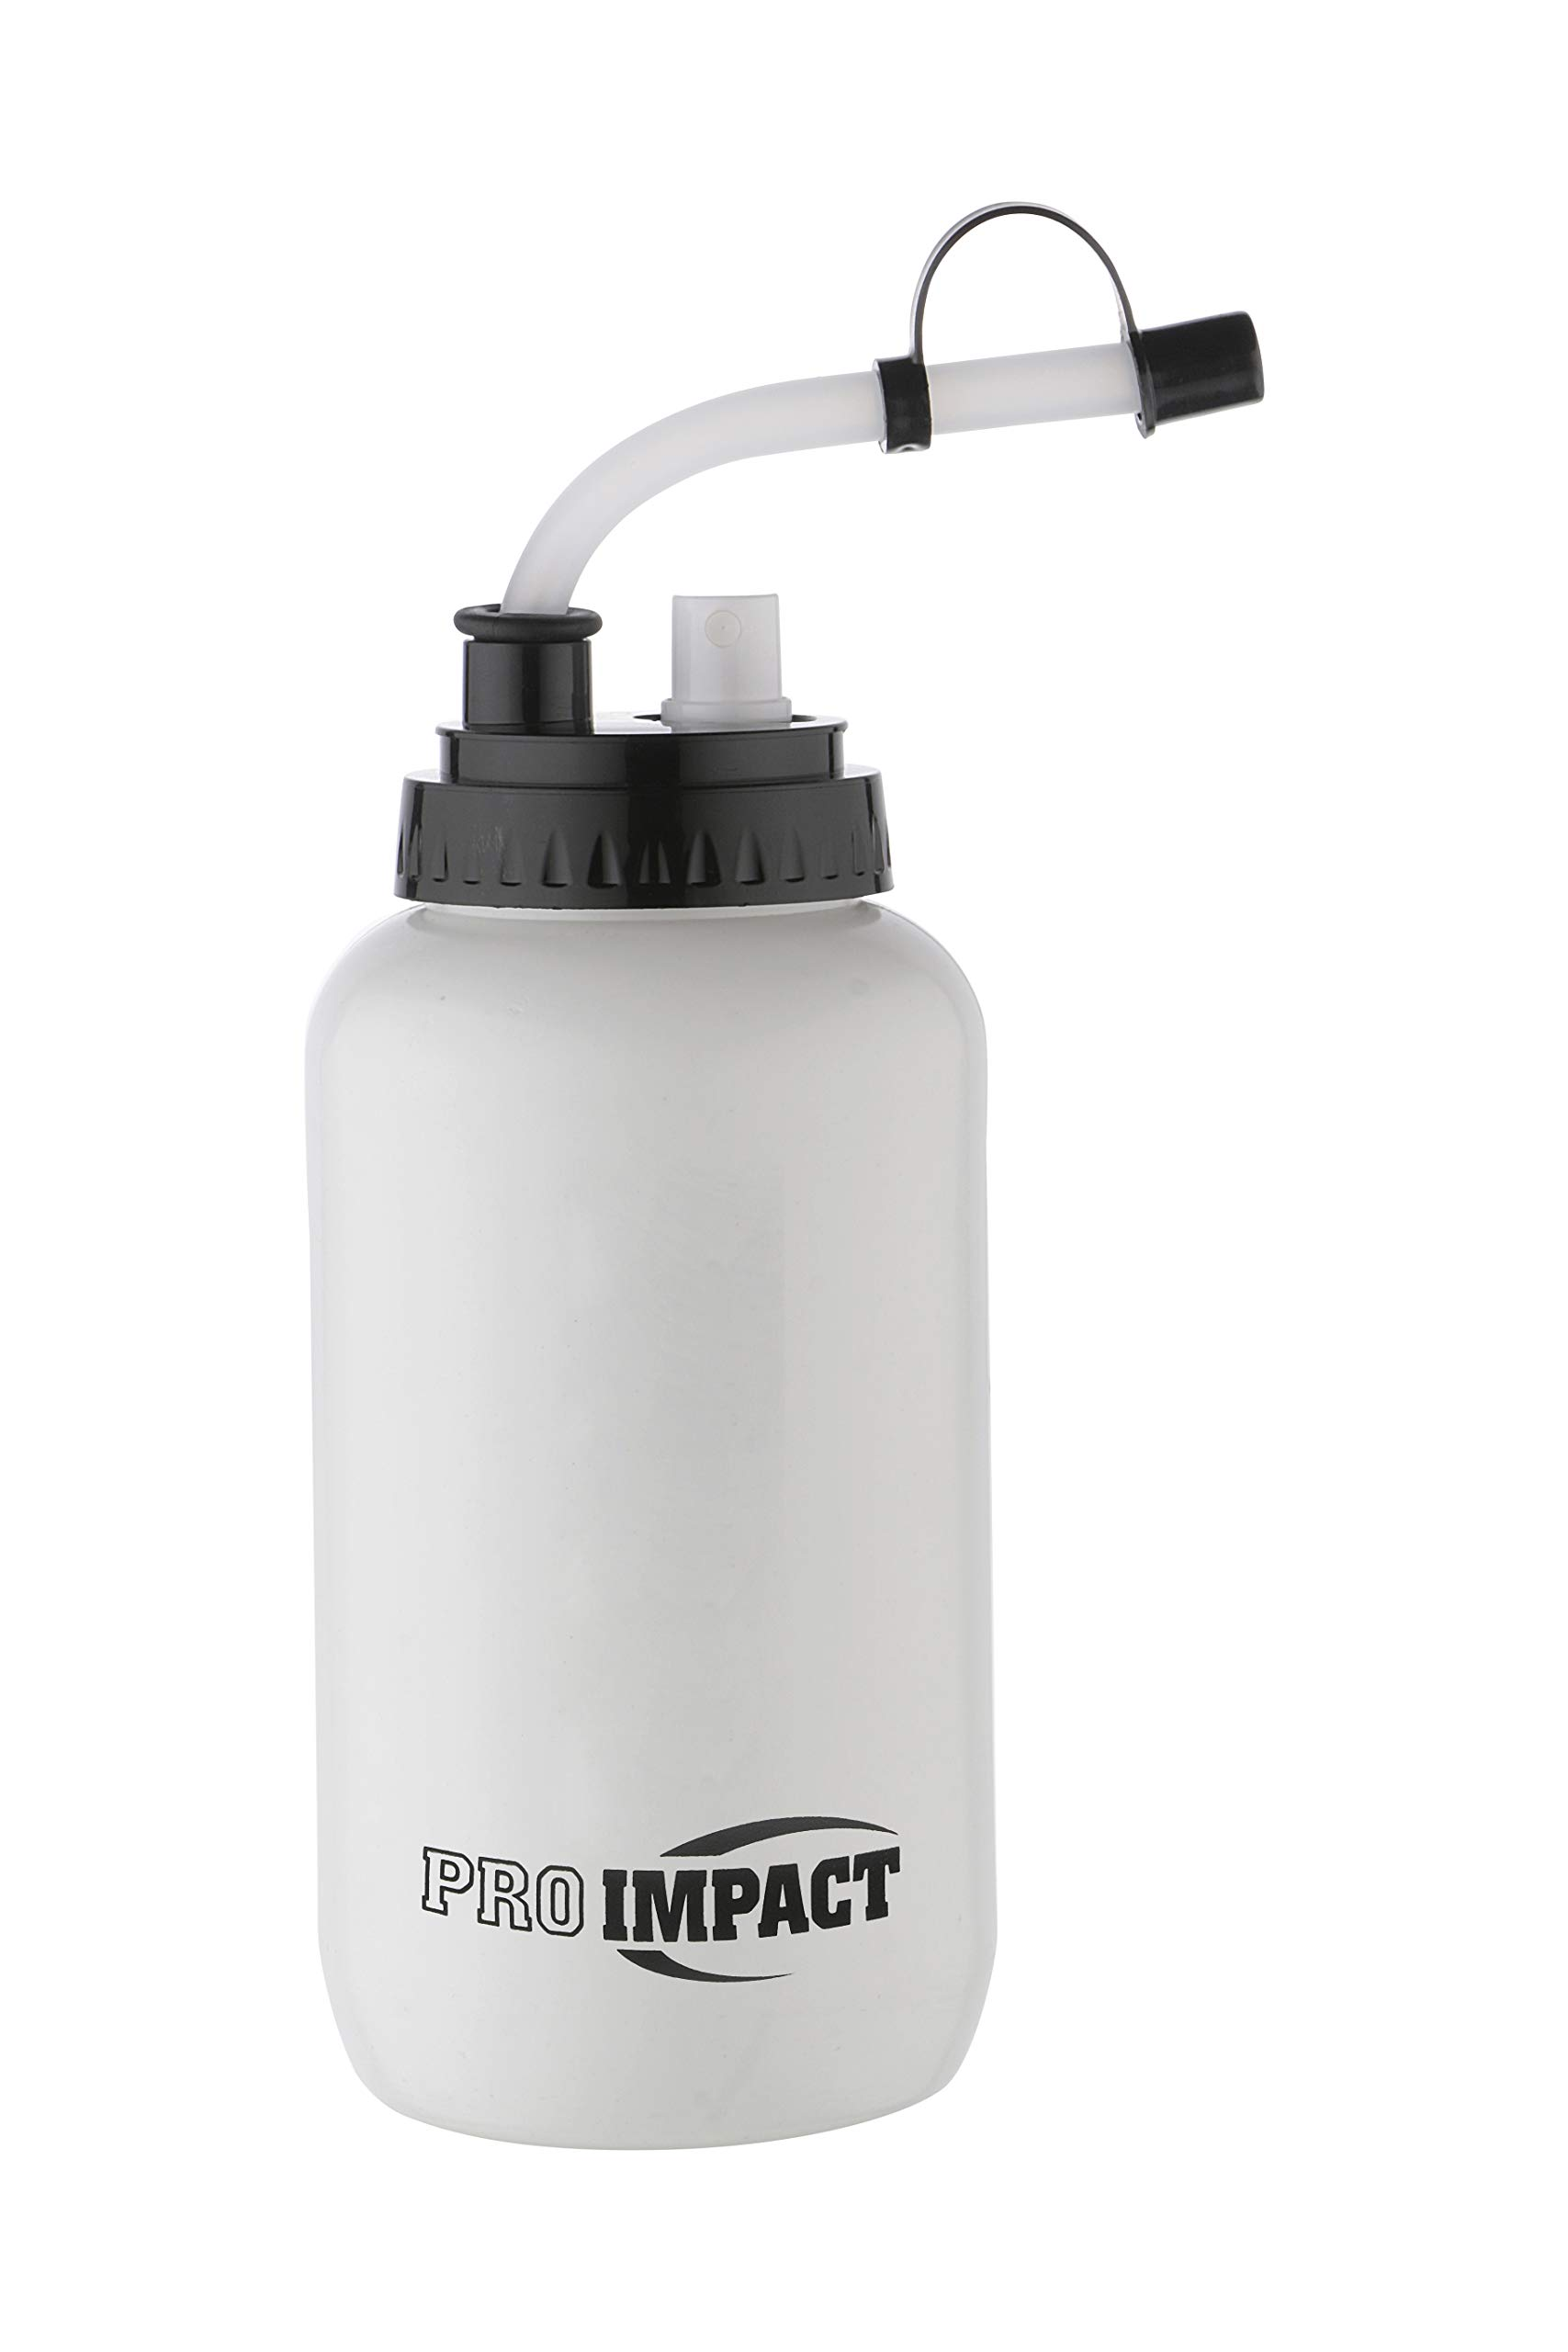 Pro Impact Fatboy Boxing Water bottle WHITE with SPRAY Hockey Lacrosse Water Bottle White hydrate refresh boxing mma fitness bottle